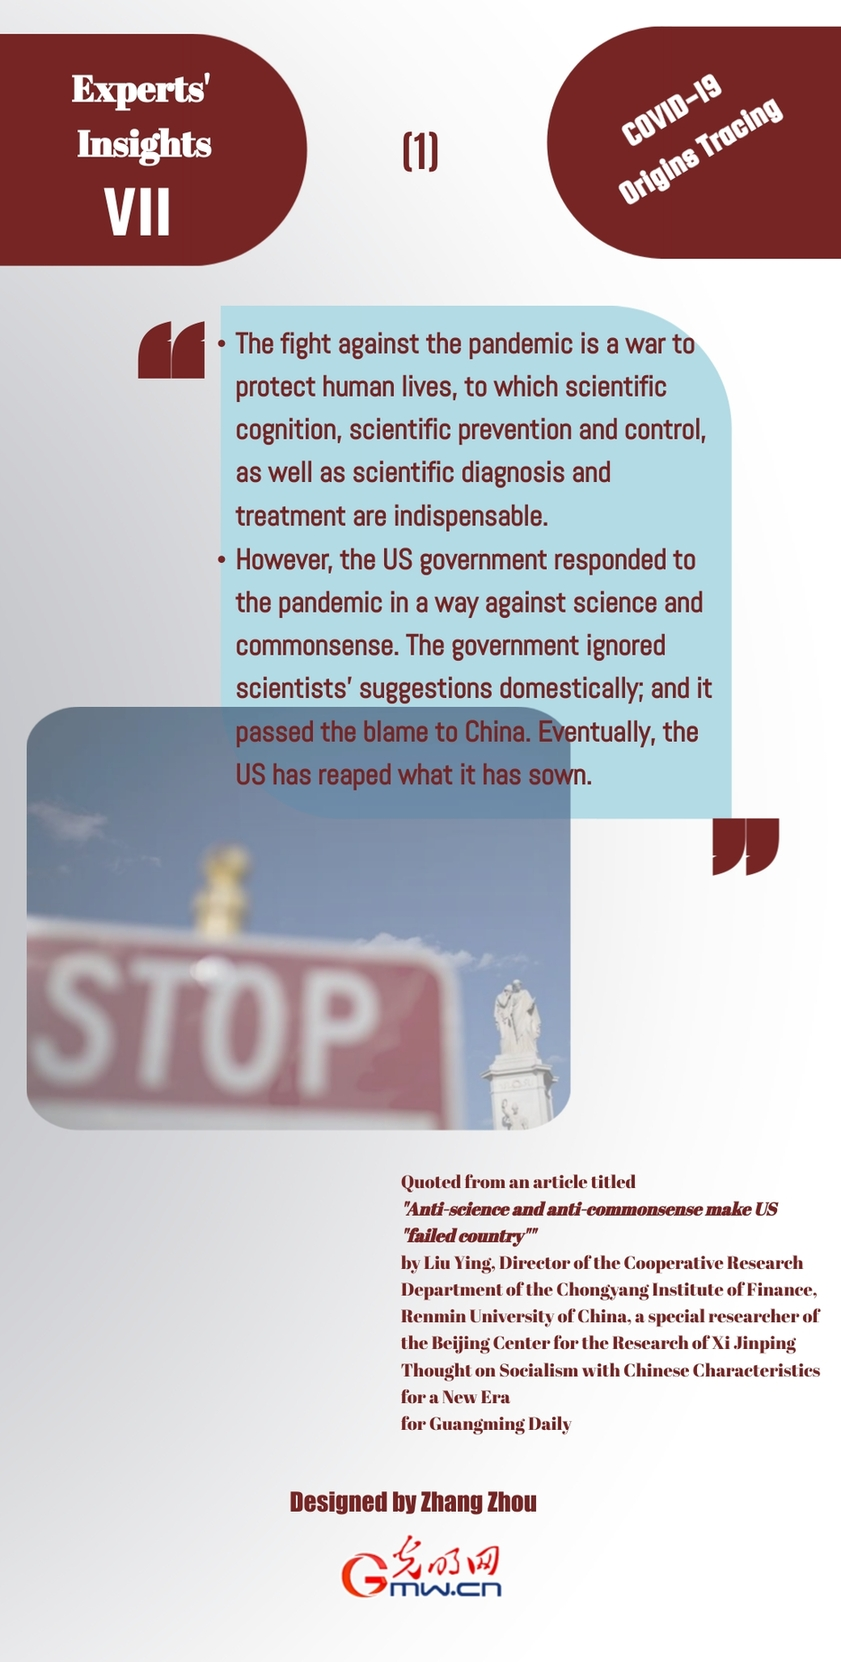 Experts' Insights VII: Anti-science and Anti-commonsense make US